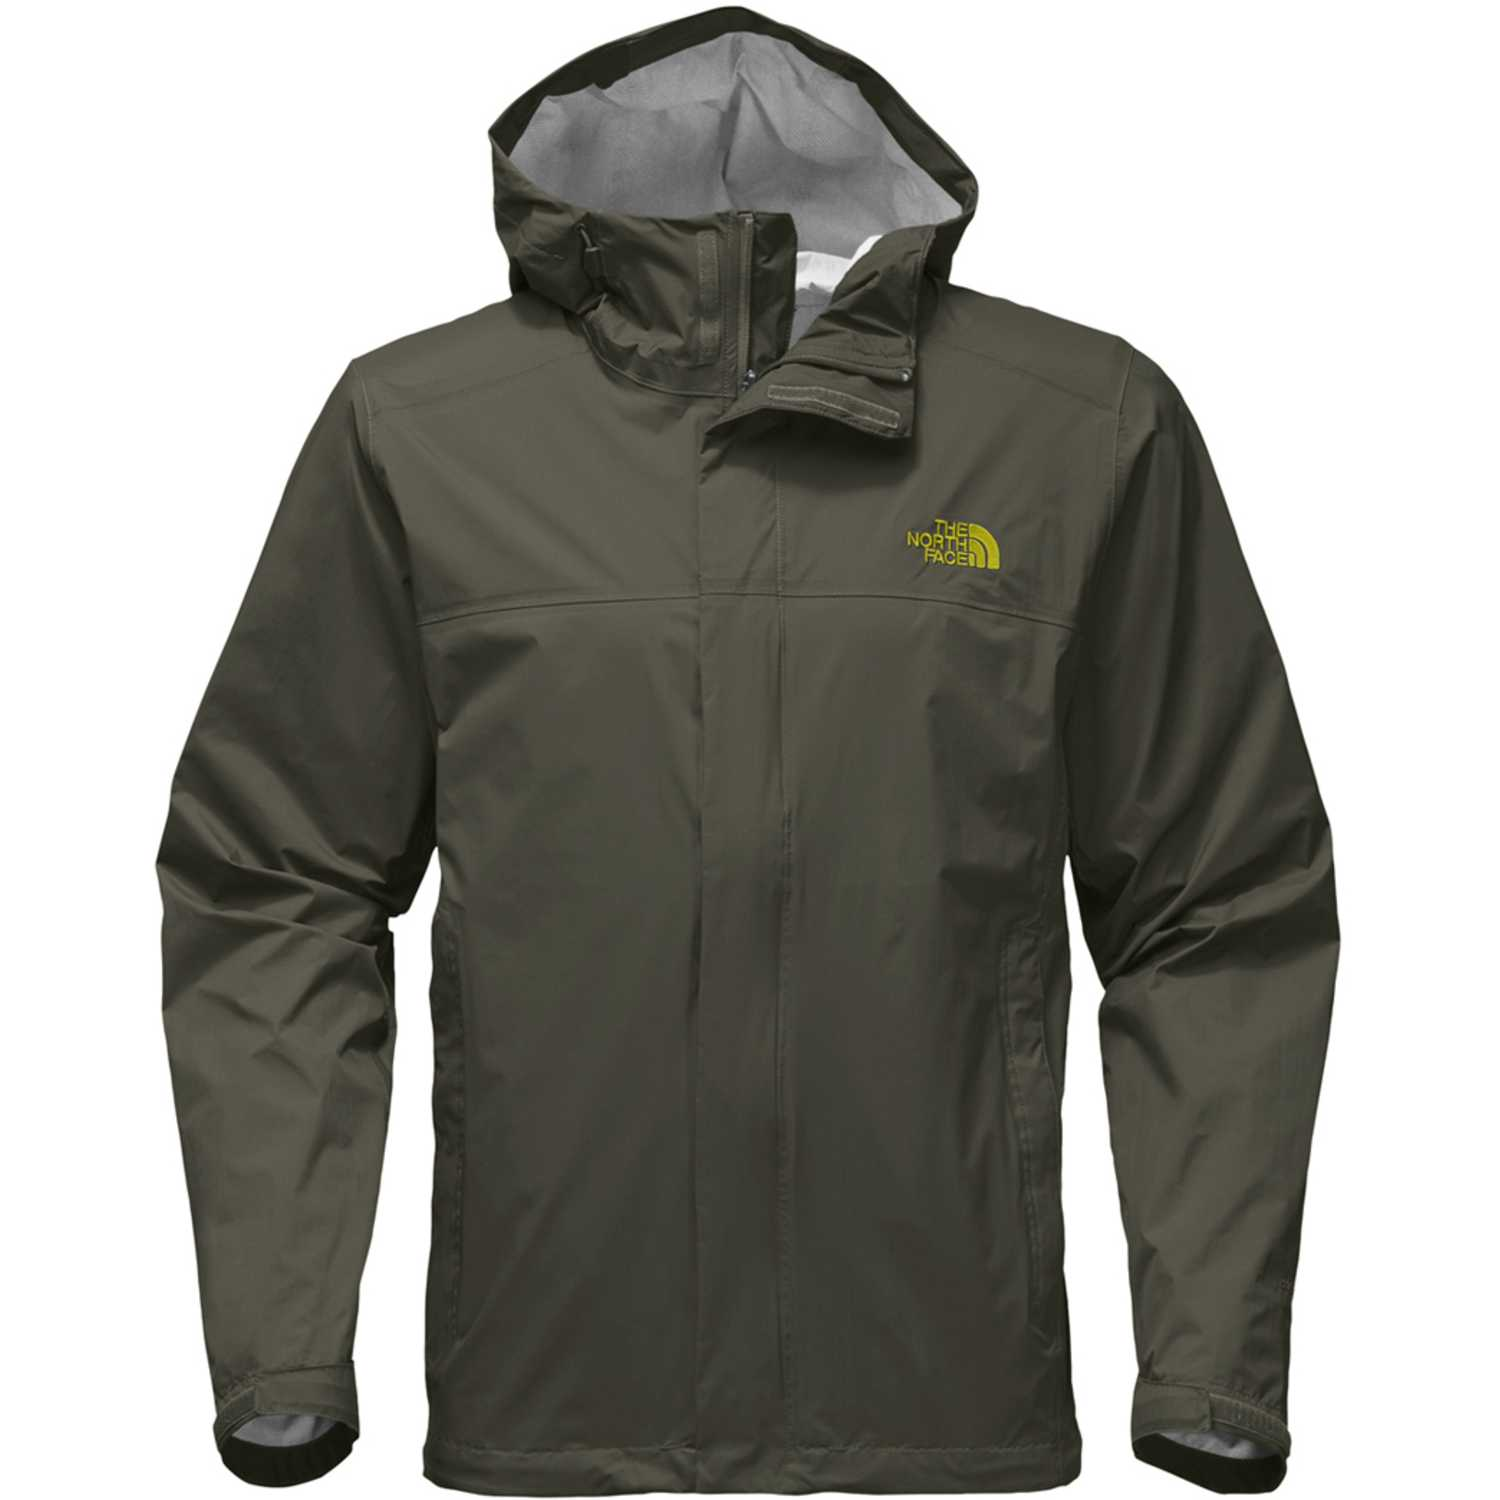 Casacas de Hombre The North Face Verde m venture 2 jacket